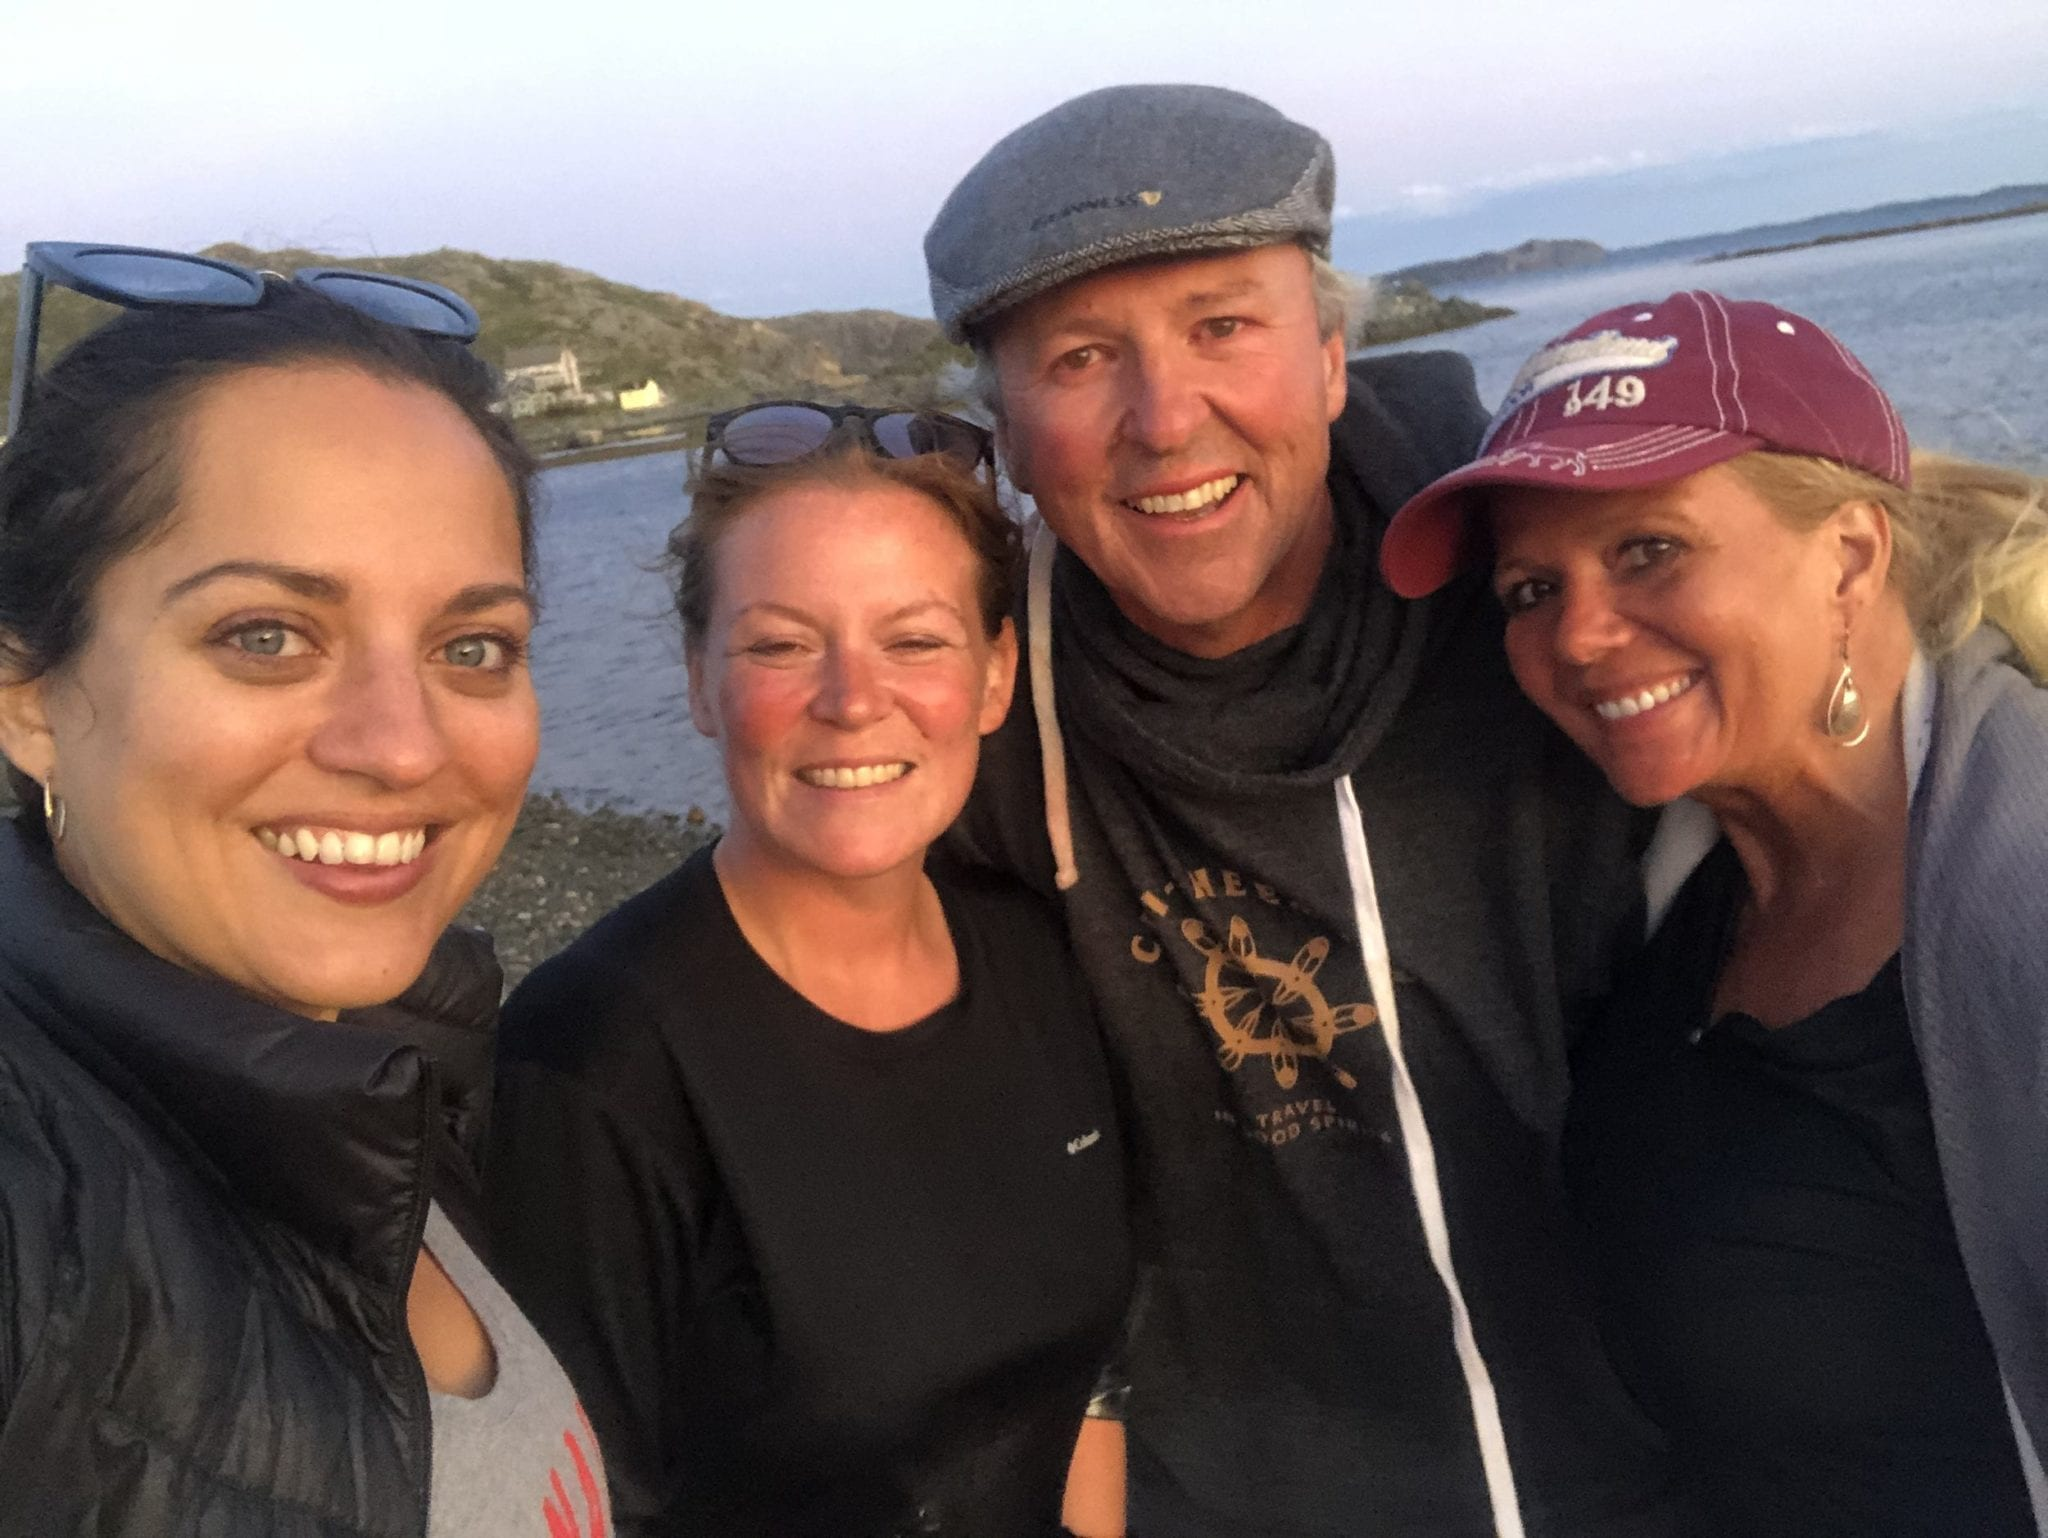 Kate and her three new friends pose for a smiling selfie on the beach.